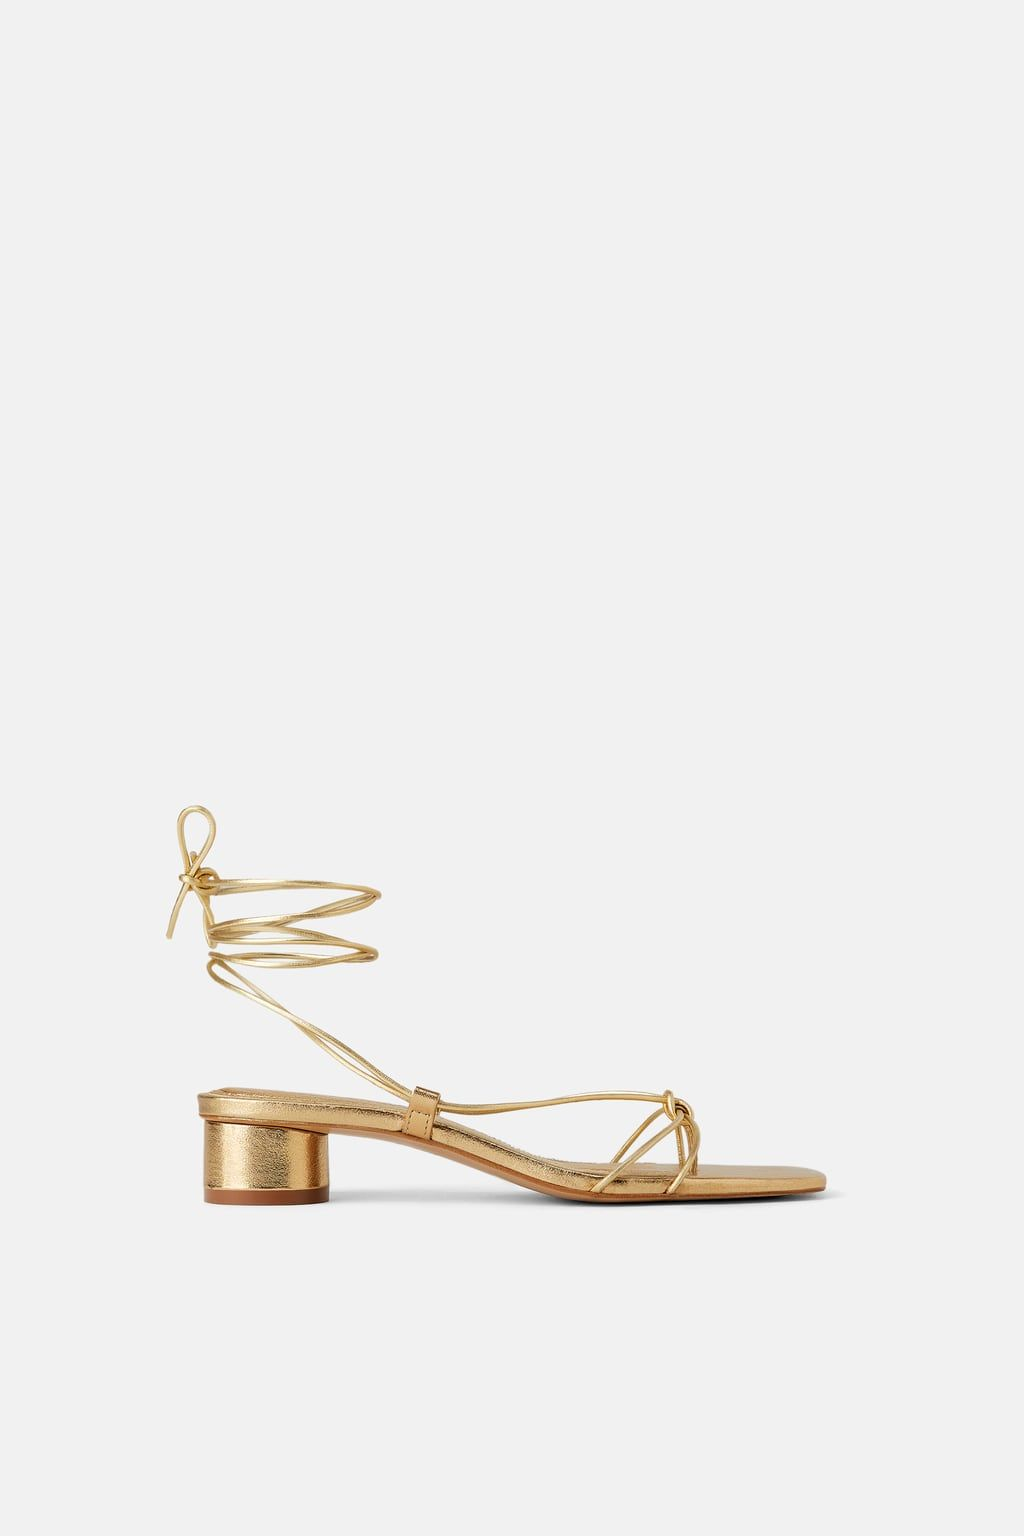 673d42e09 HEELED LEATHER SANDALS WITH THIN STRAPS - Heeled Sandals-SHOES-WOMAN | ZARA  United States